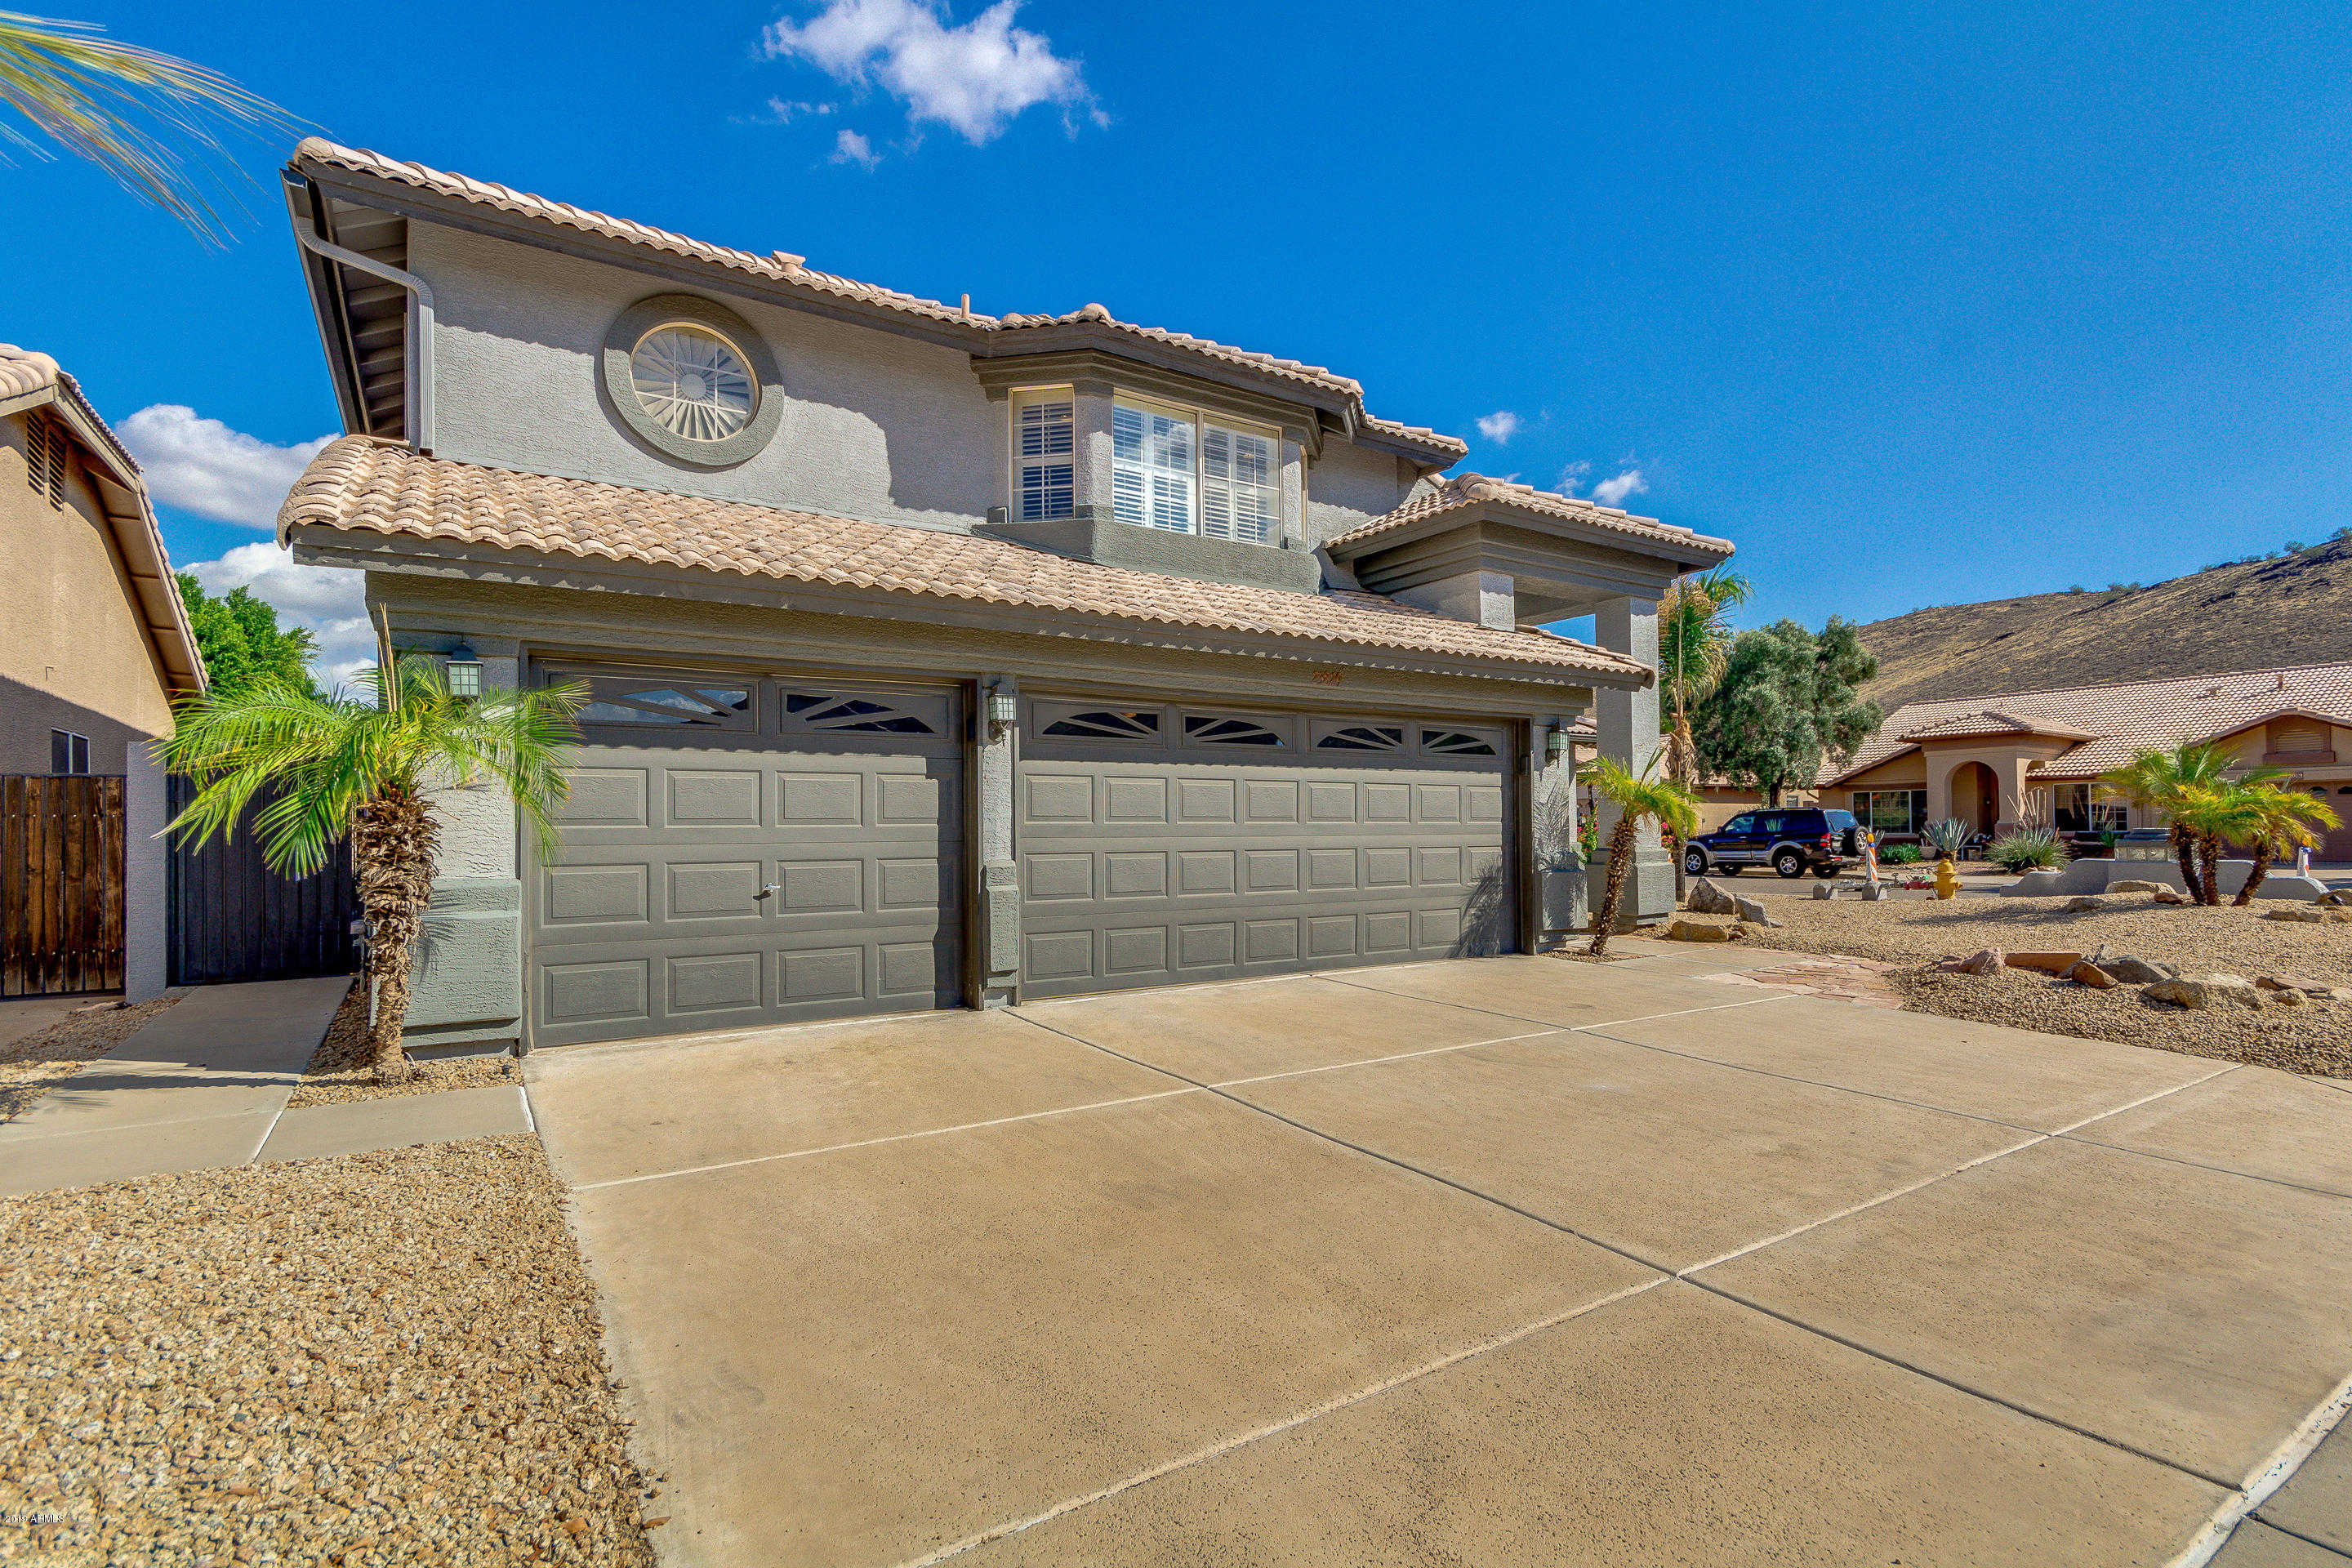 $379,900 - 4Br/3Ba - Home for Sale in Pinnacle Hill Lot 1-259 Tr A-o, Glendale